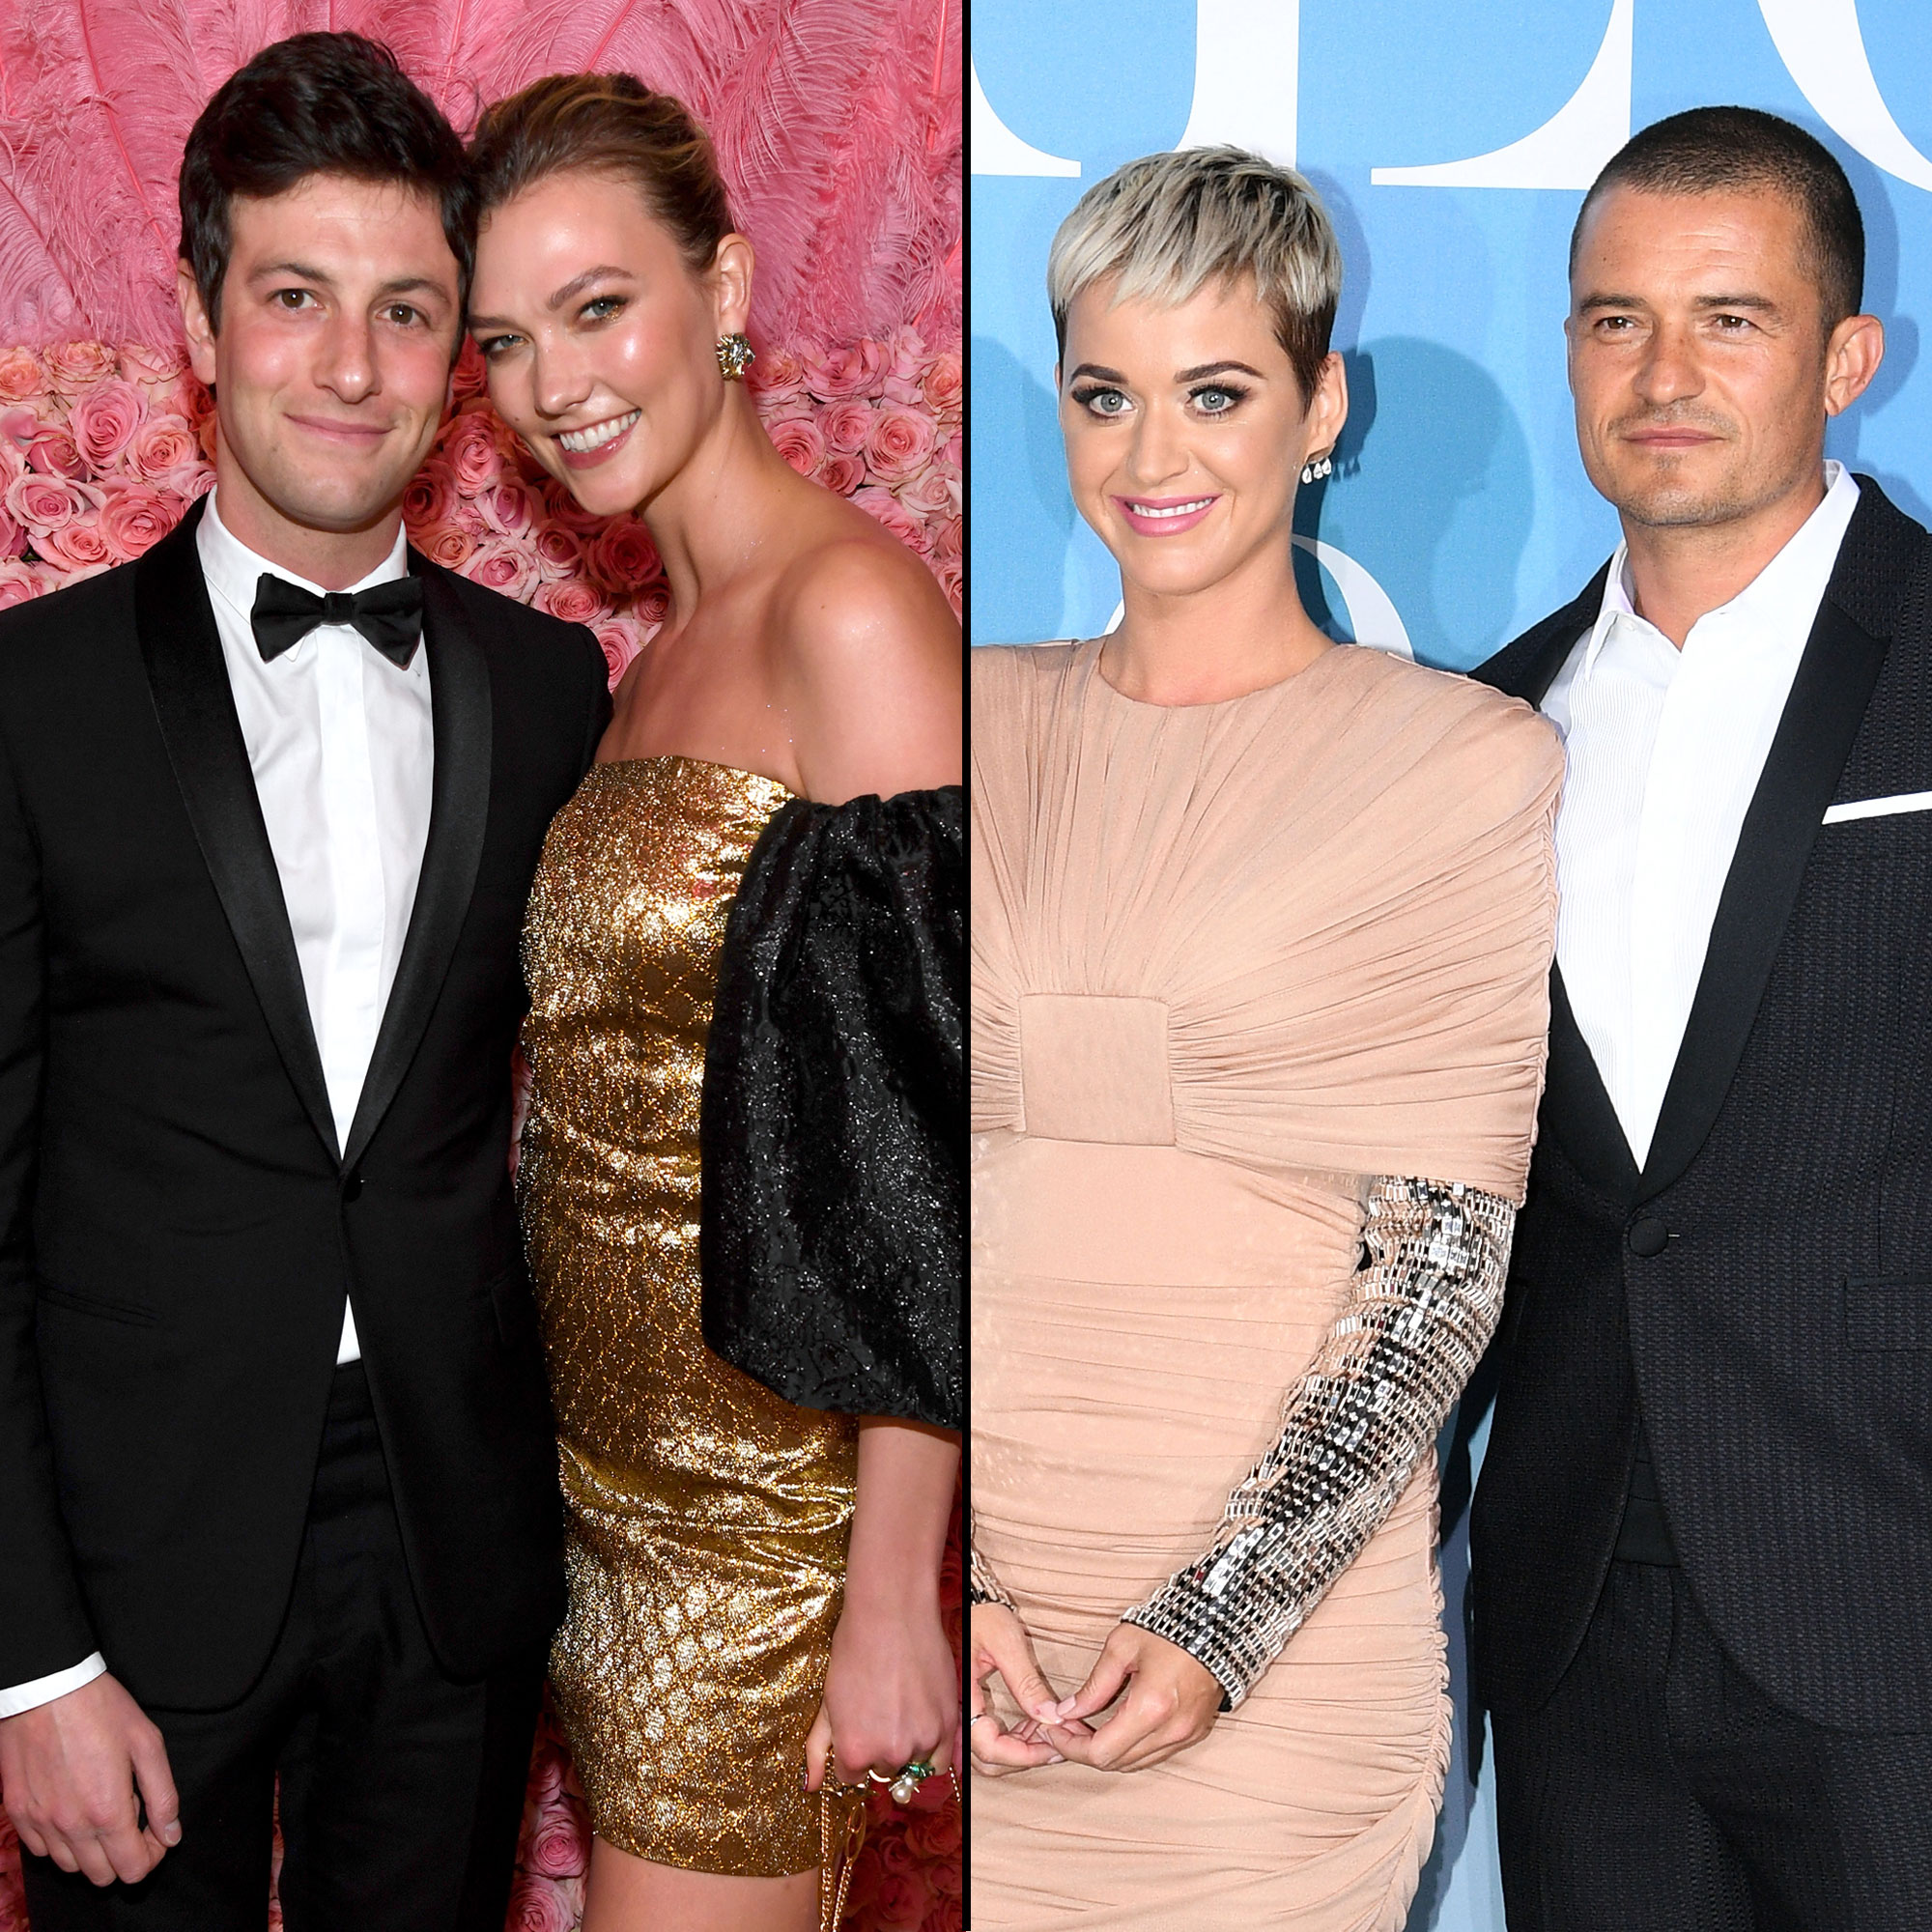 Karlie Kloss And Joshua Kushner Wed For Second Time In Wyoming